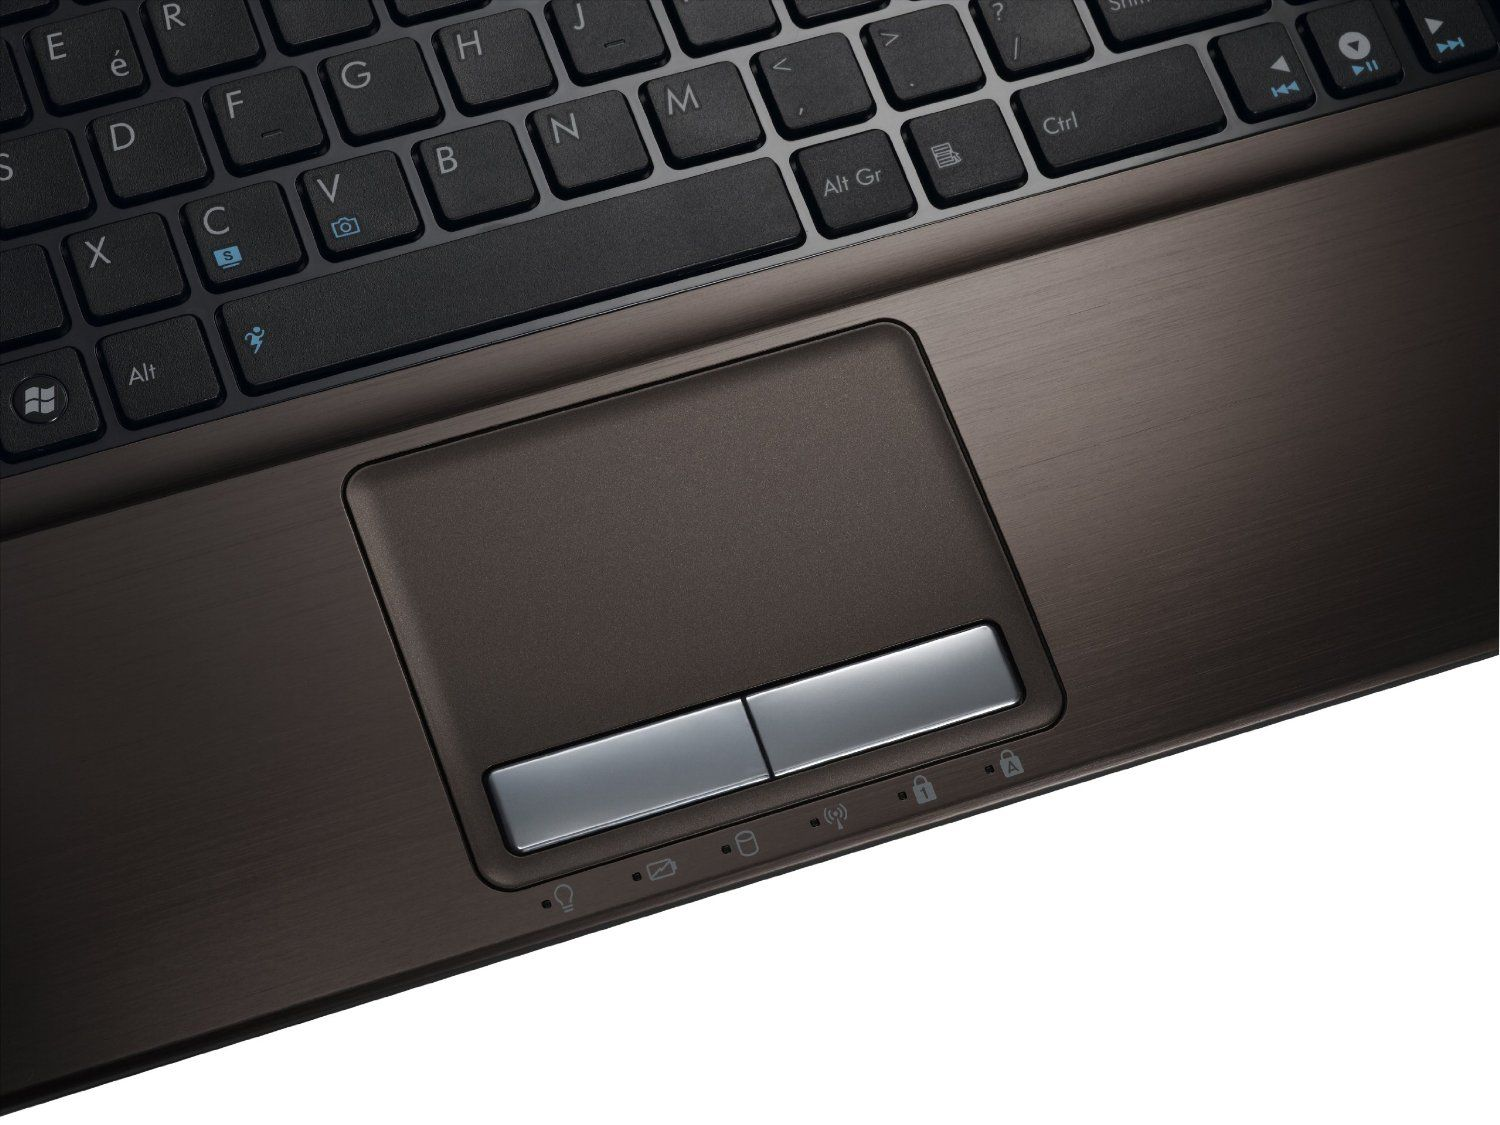 ASUS K53SD-SX809M - 8